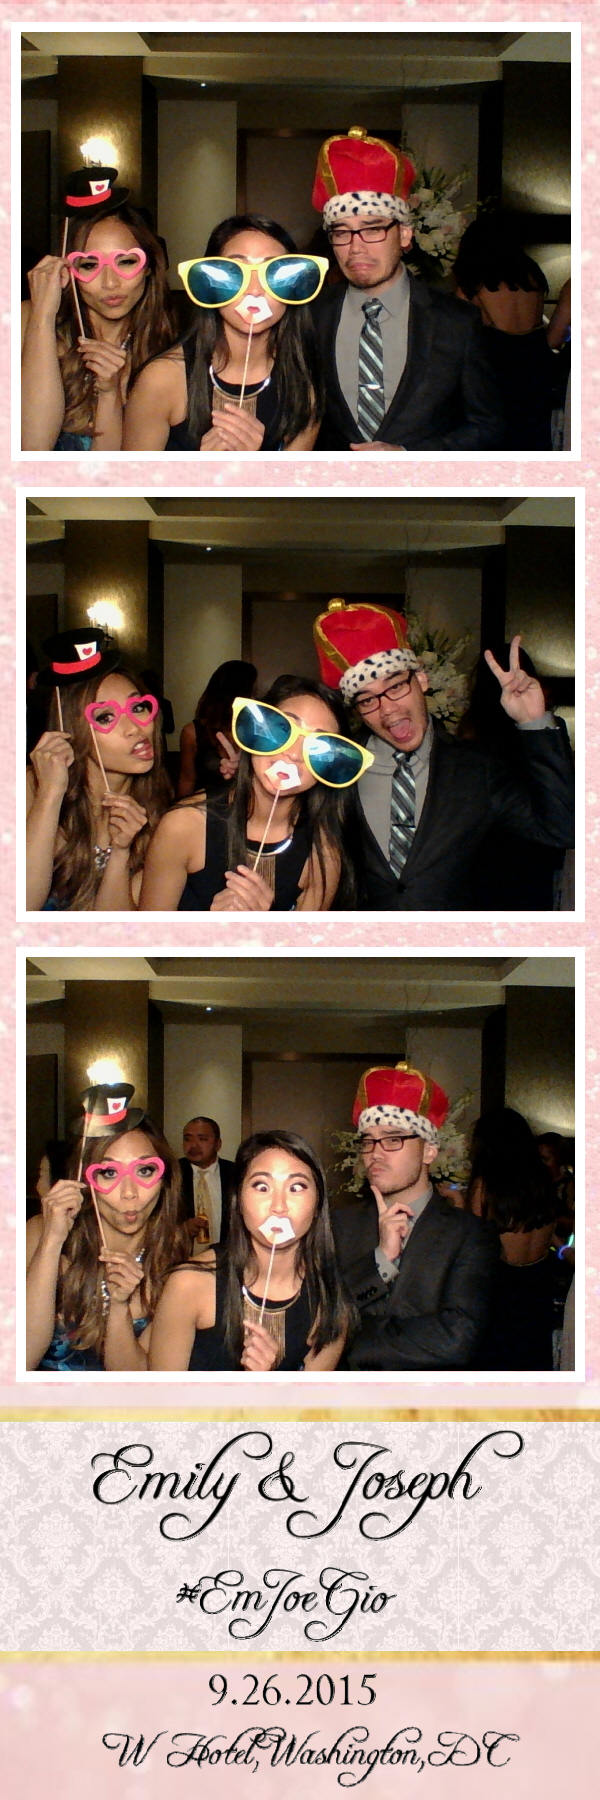 Guest House Events Photo Booth E&J (14).jpg